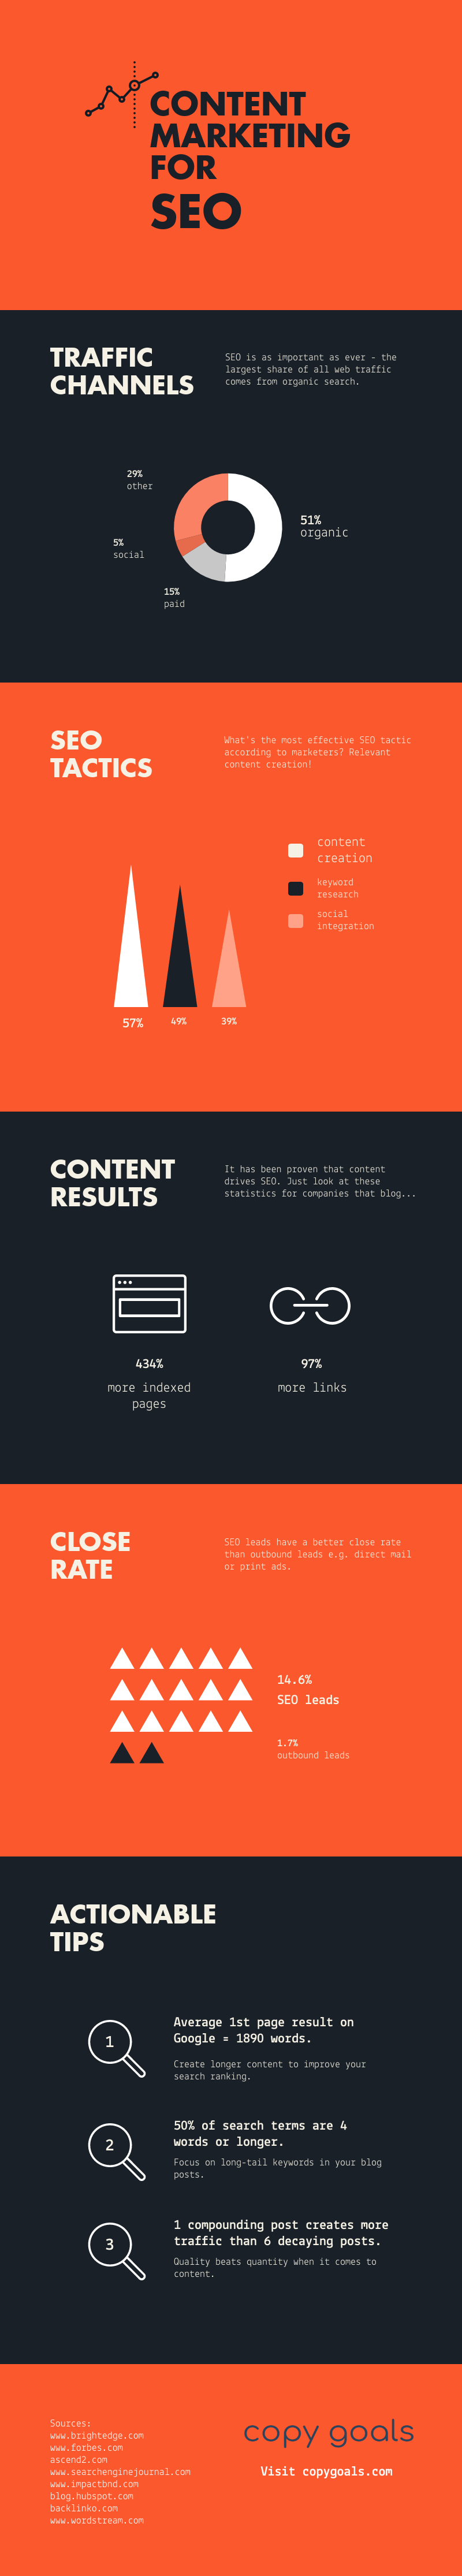 Infographic image about content marketing for SEO